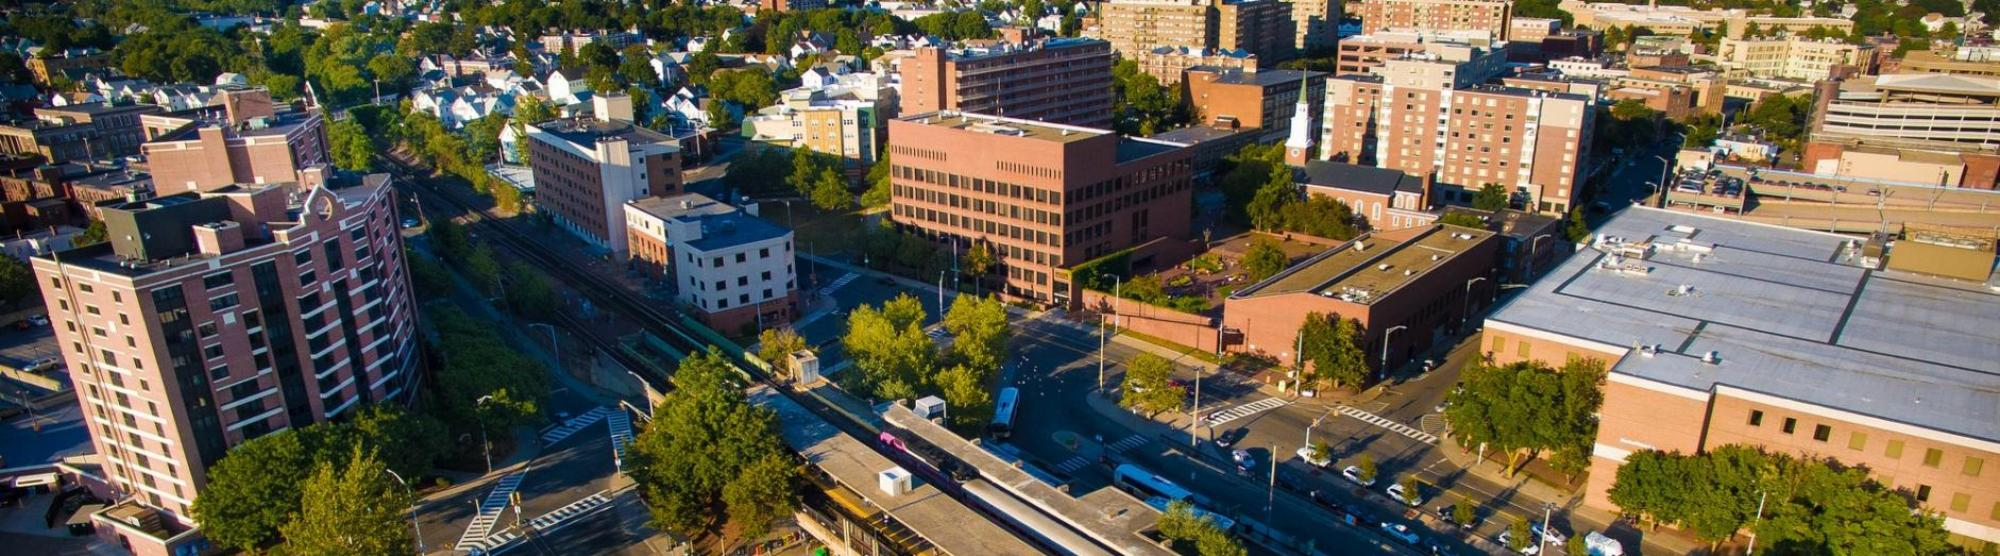 View Downtown Malden (Pre-demolition of Government Center and Police Station)